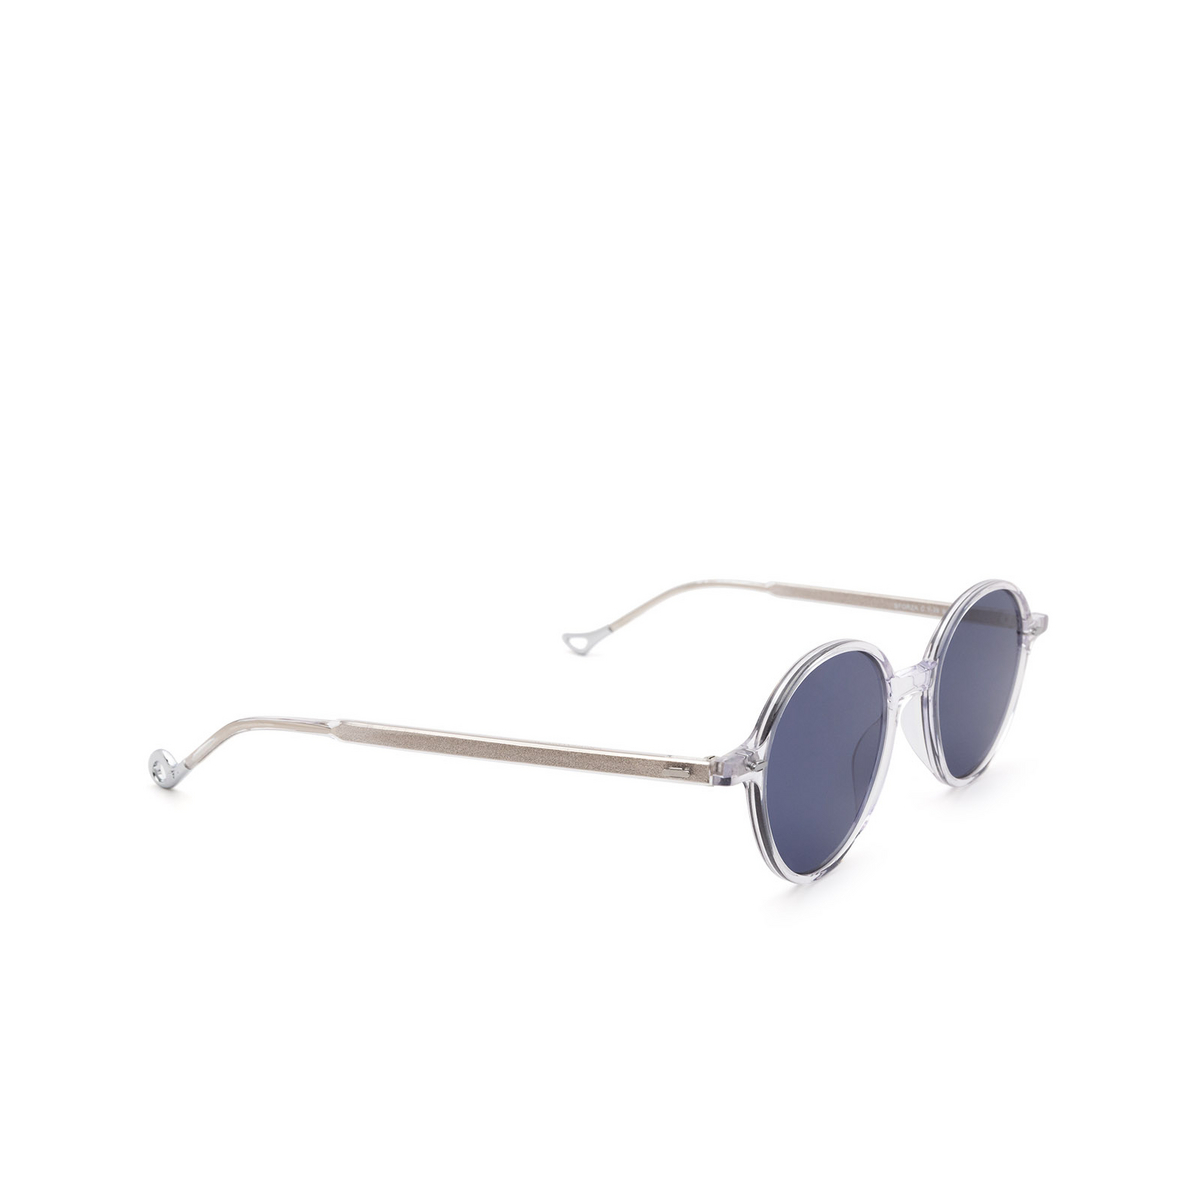 Eyepetizer® Round Sunglasses: Sforza color Crystal C.Y-39 - three-quarters view.